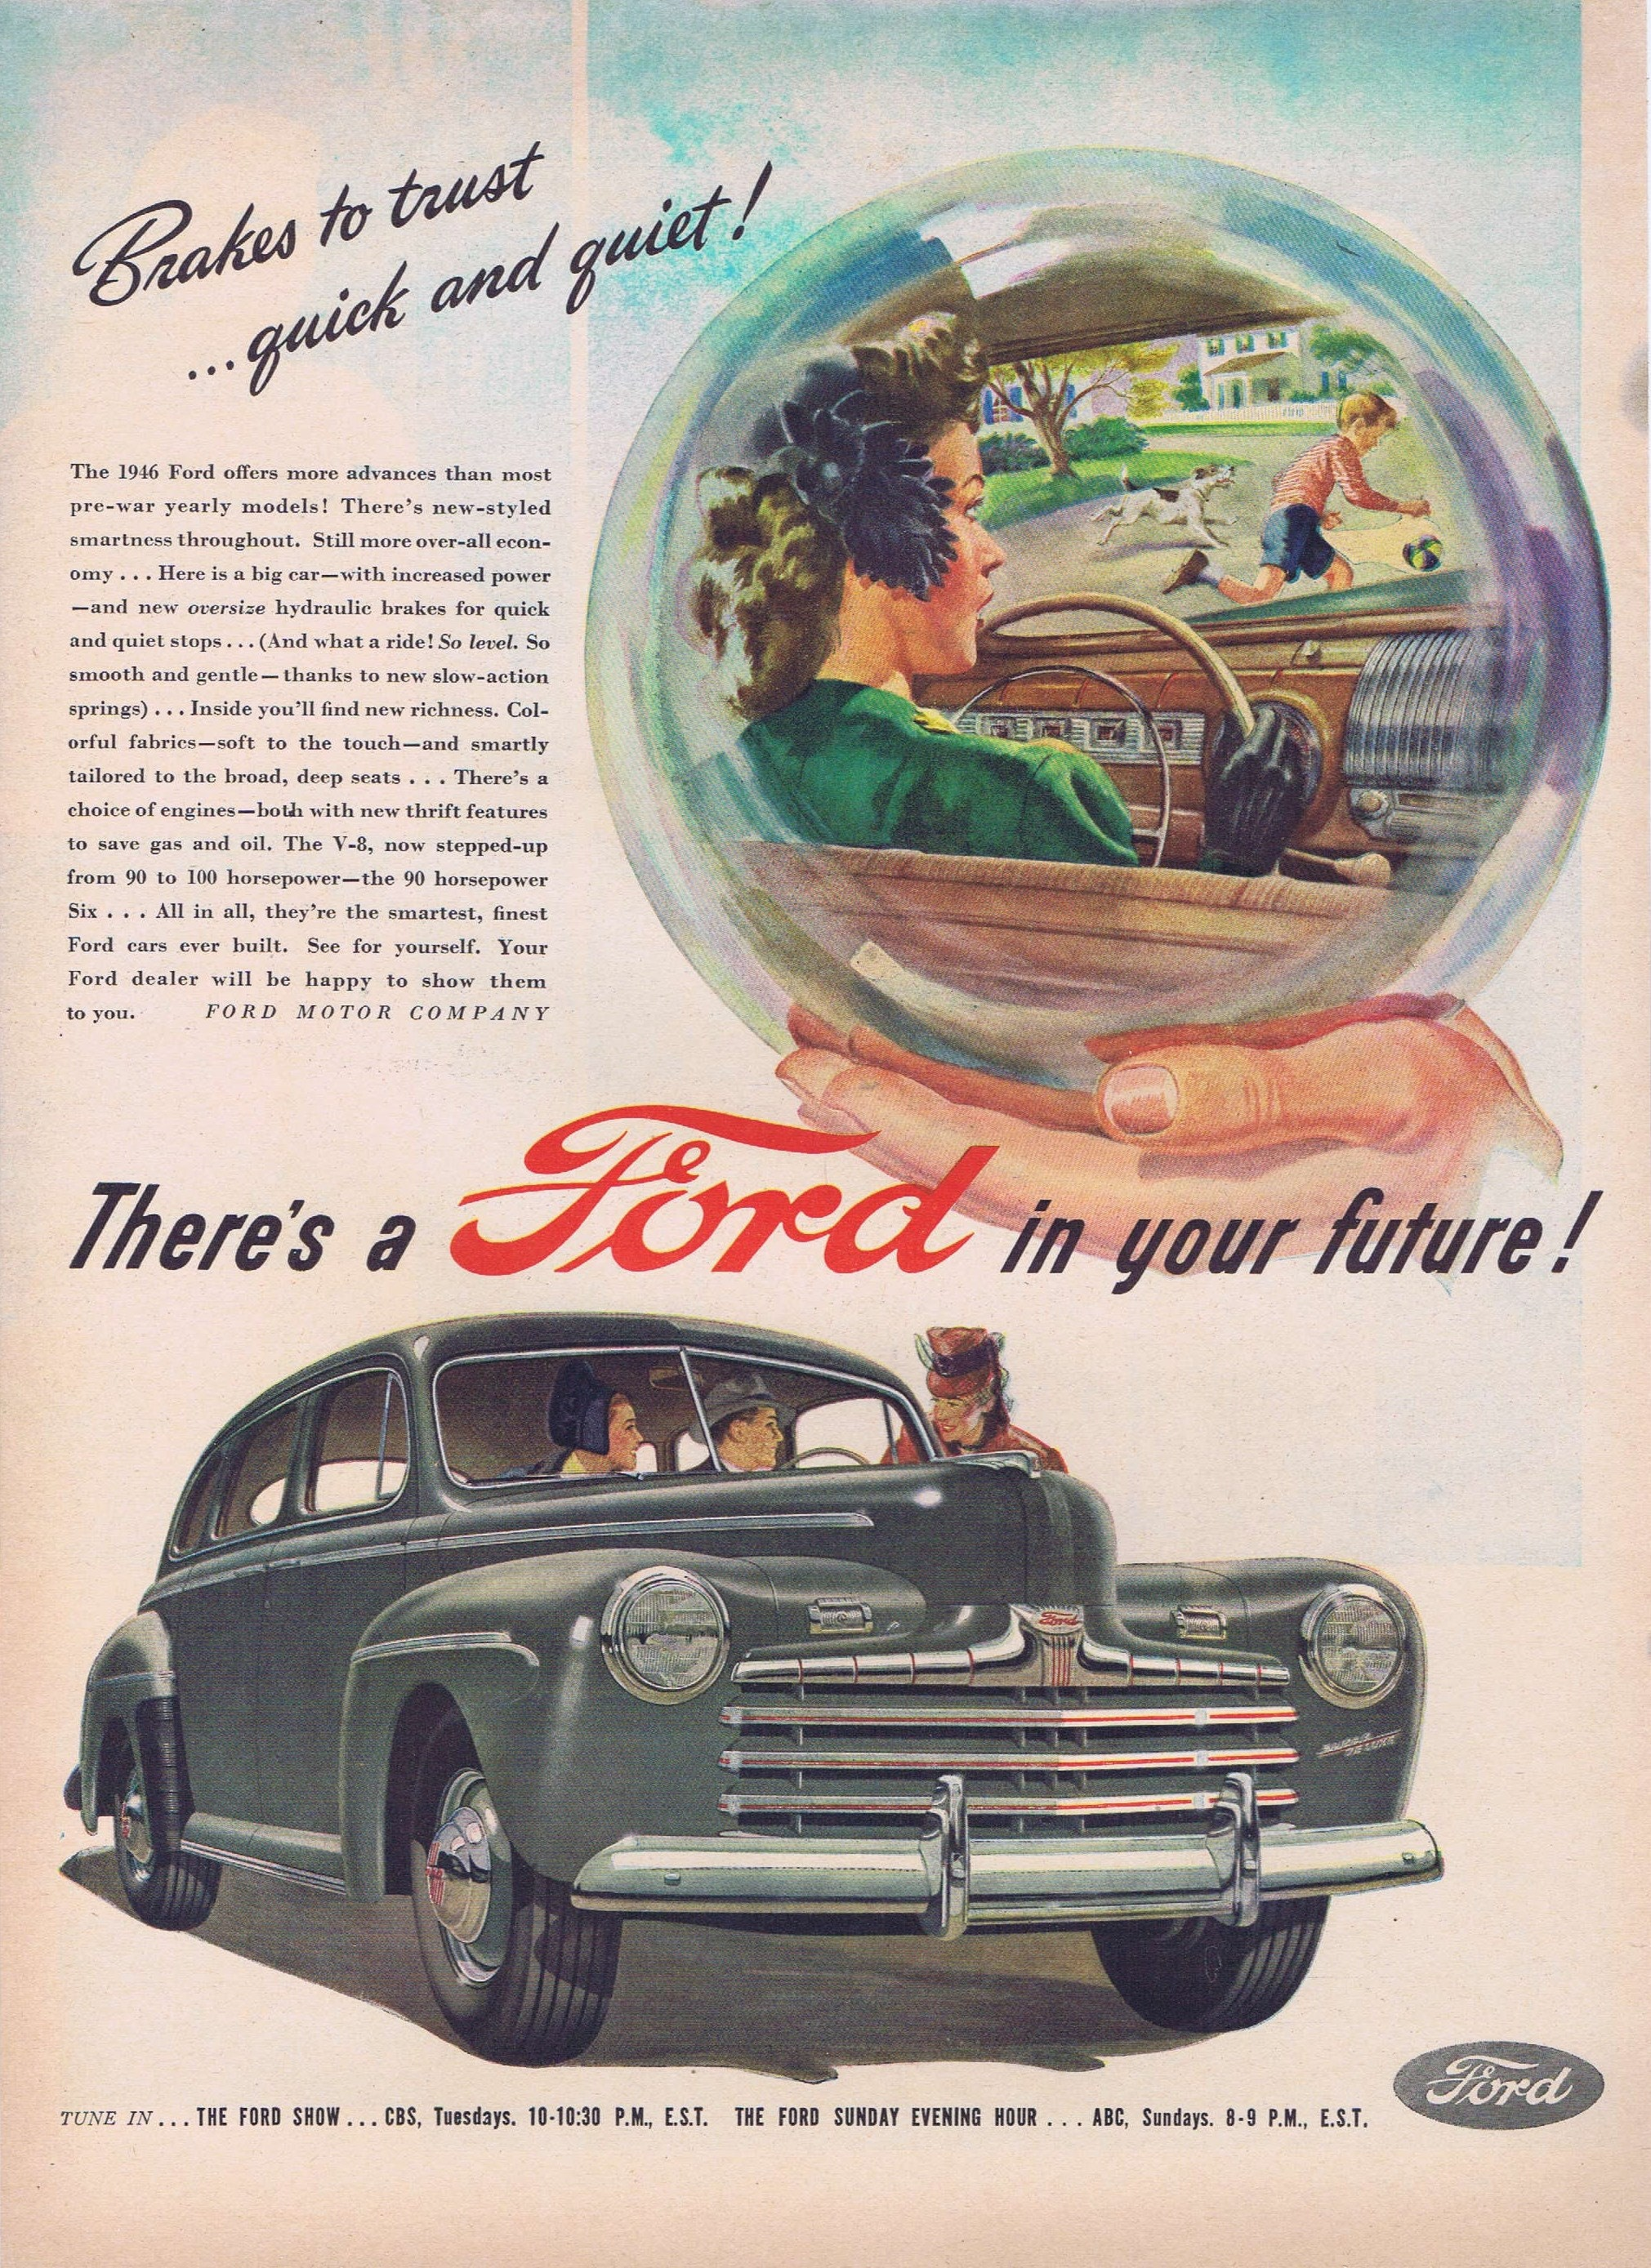 1946 Ford Automobiles with Brakes to Trust Original Vintage